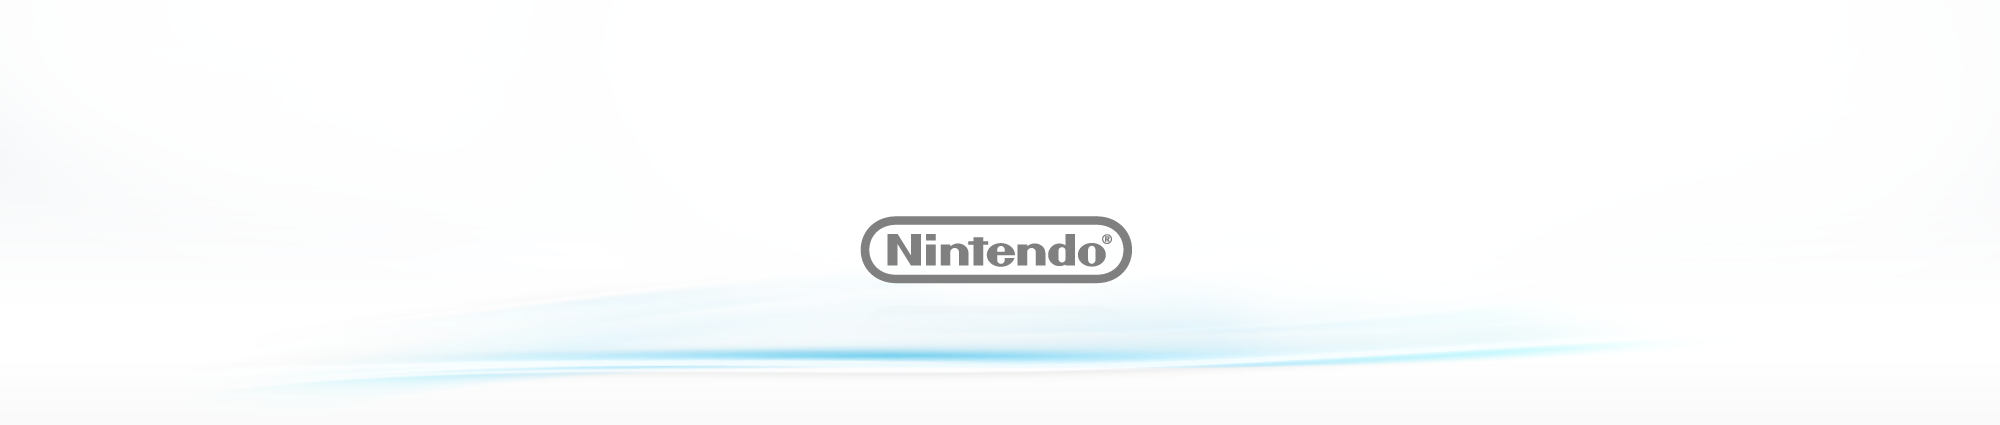 Can I sign up for a Nintendo Account even if I don't own a Nintendo device?